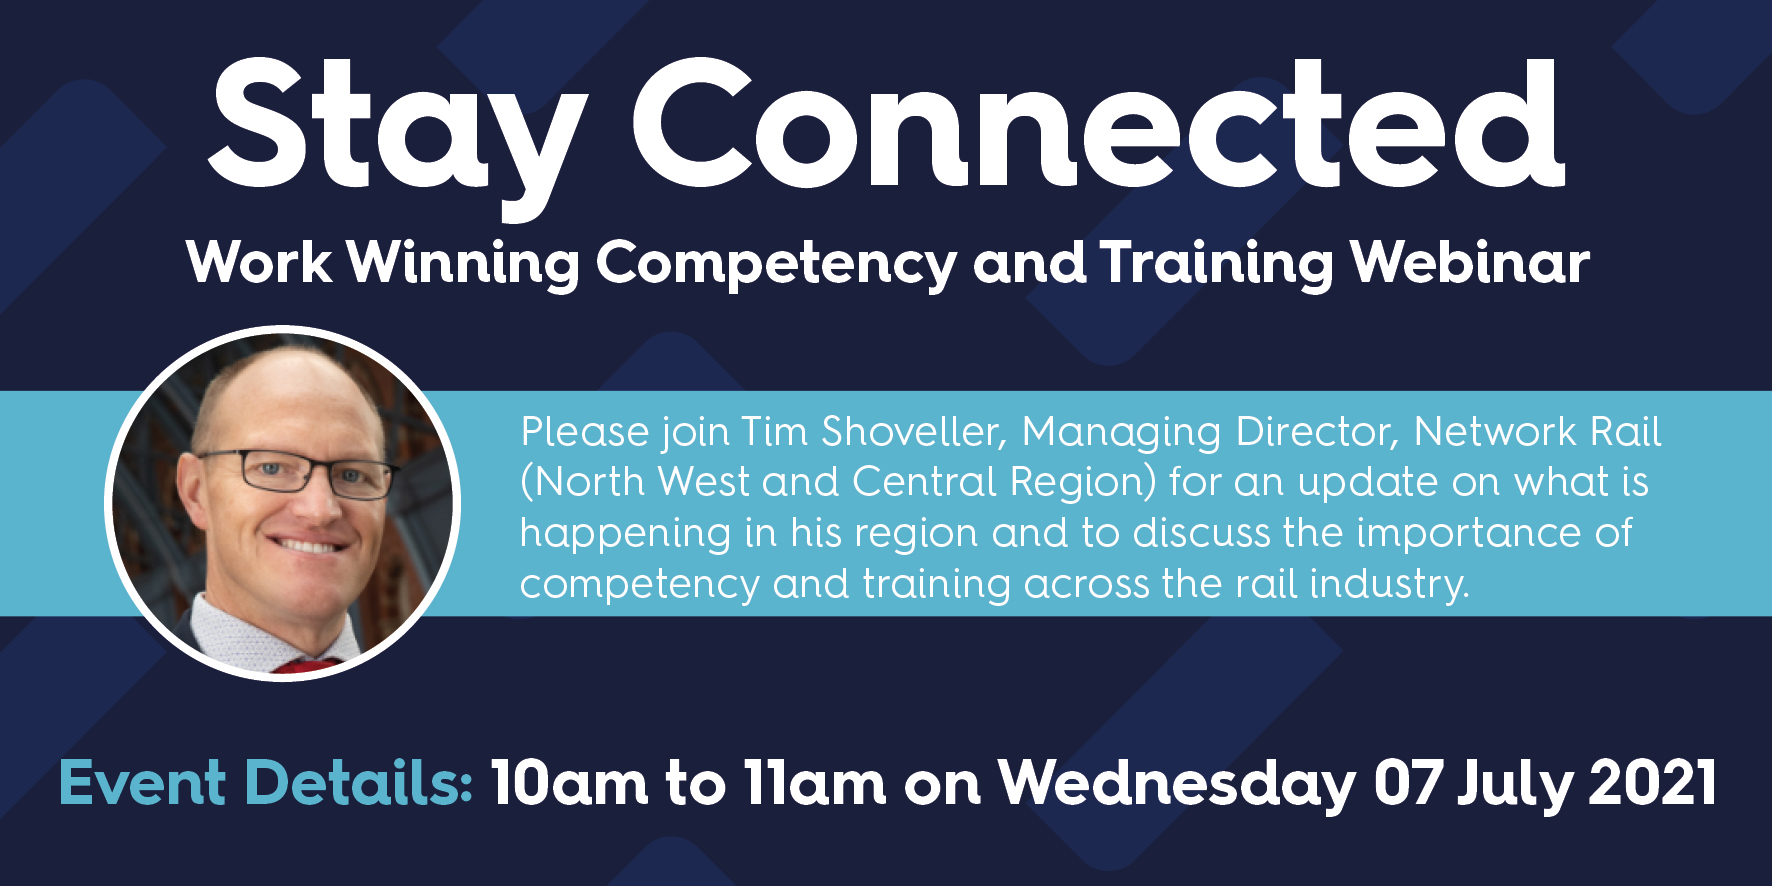 Stay Connected event image